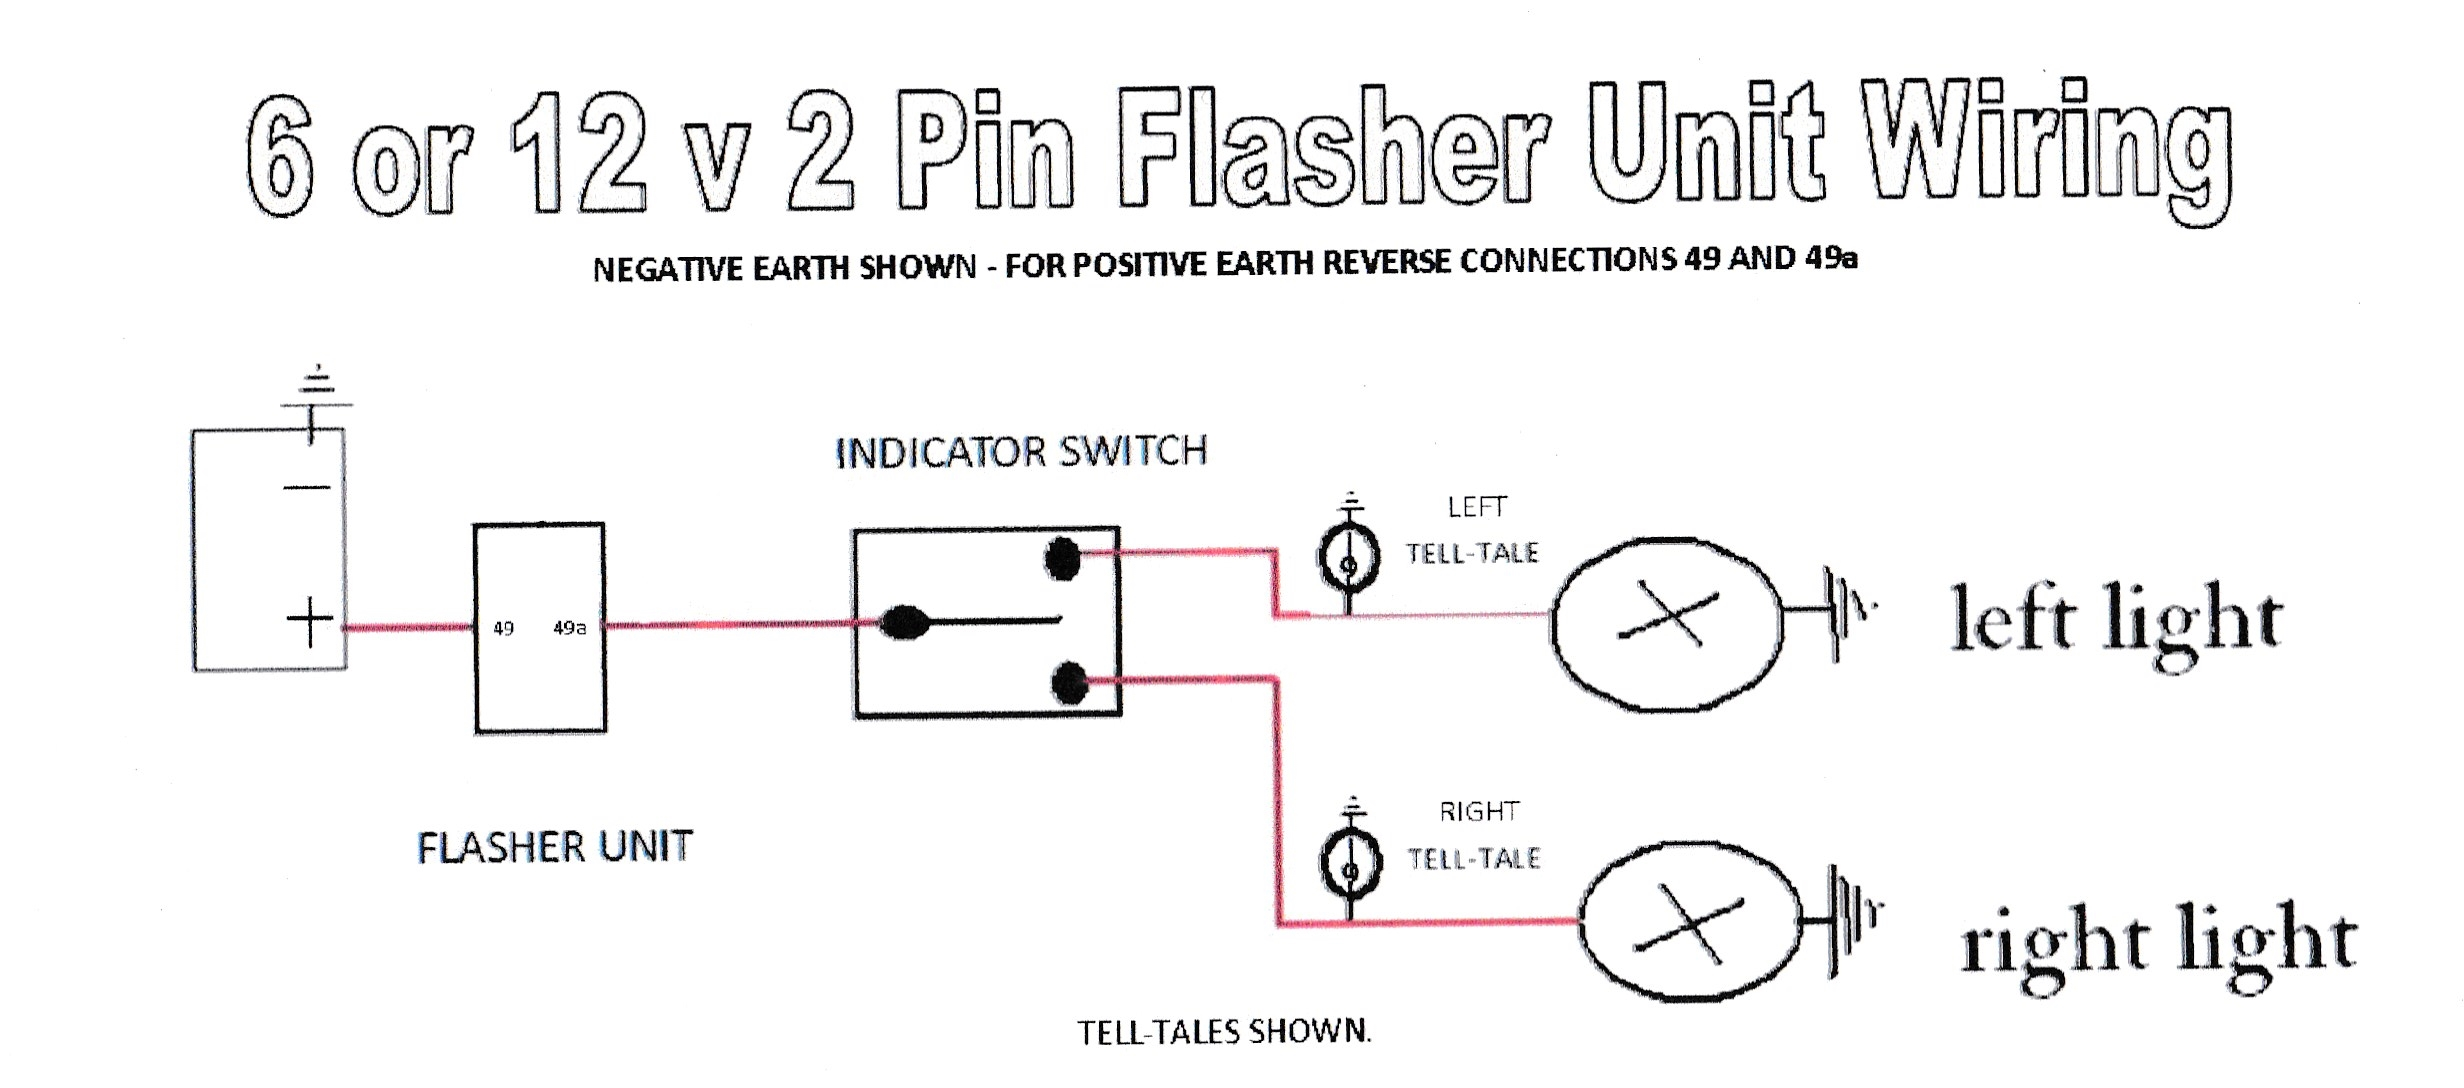 IMG_20150323_0001_NEW 3 pin flasher unit wiring diagram wiring diagram data